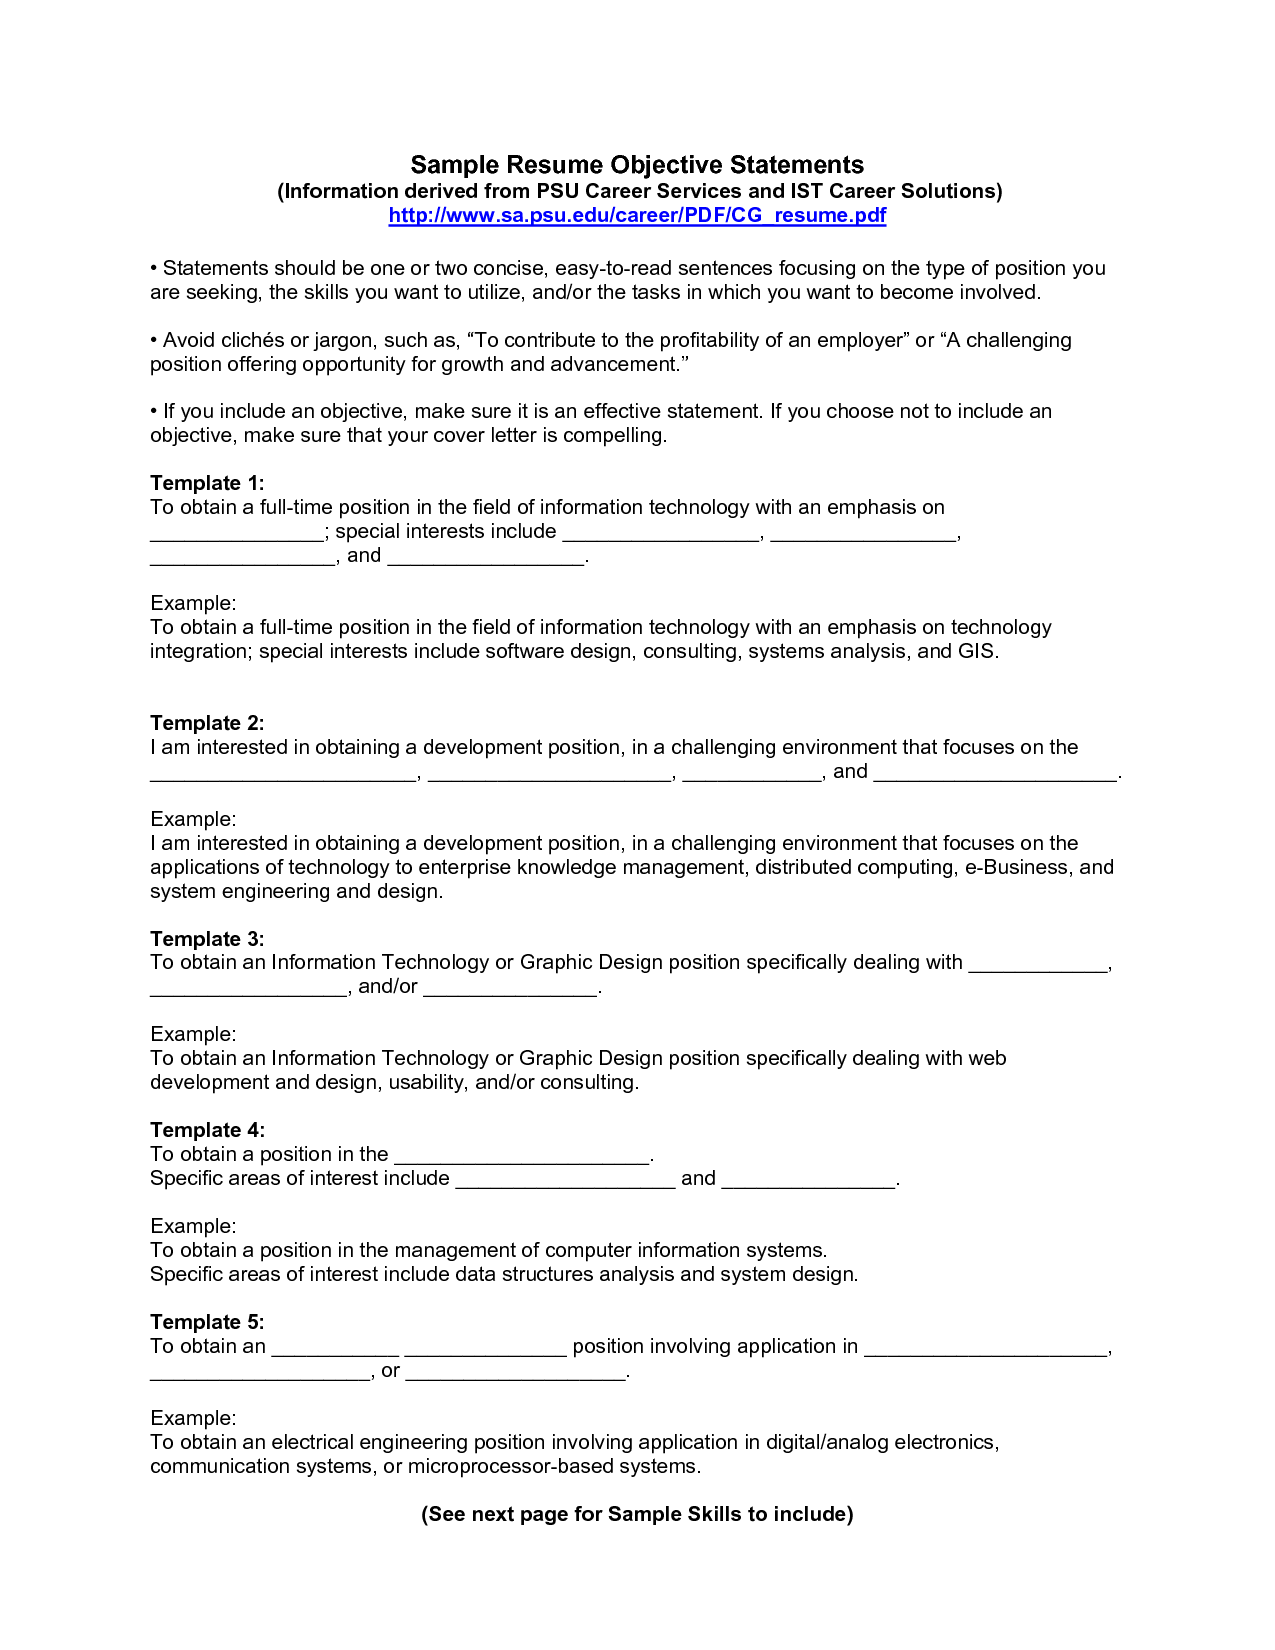 Areas Of Expertise Resume Examples New Resume Objective Statement For Teacher  Httpwww.resumecareer .